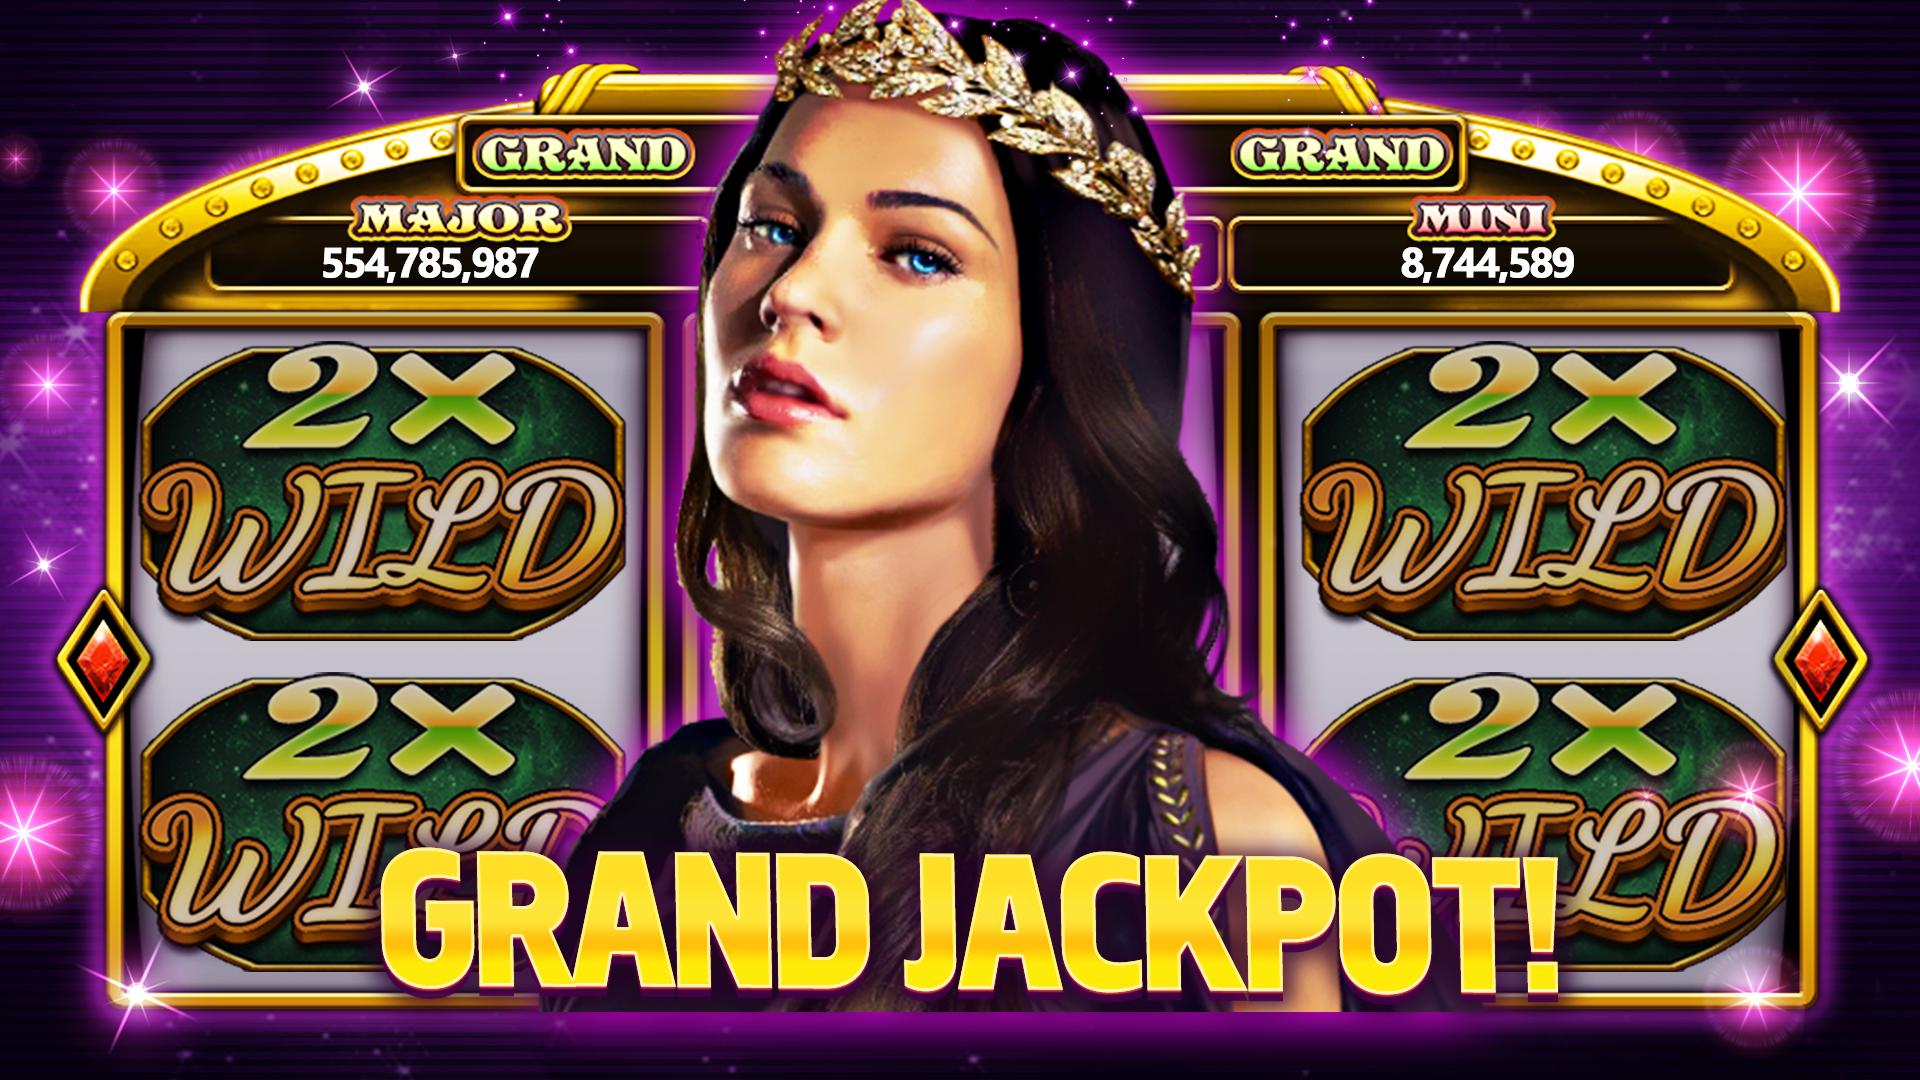 Grand Jackpot Slots Pop Vegas Casino Free Games 1.0.44 Screenshot 5